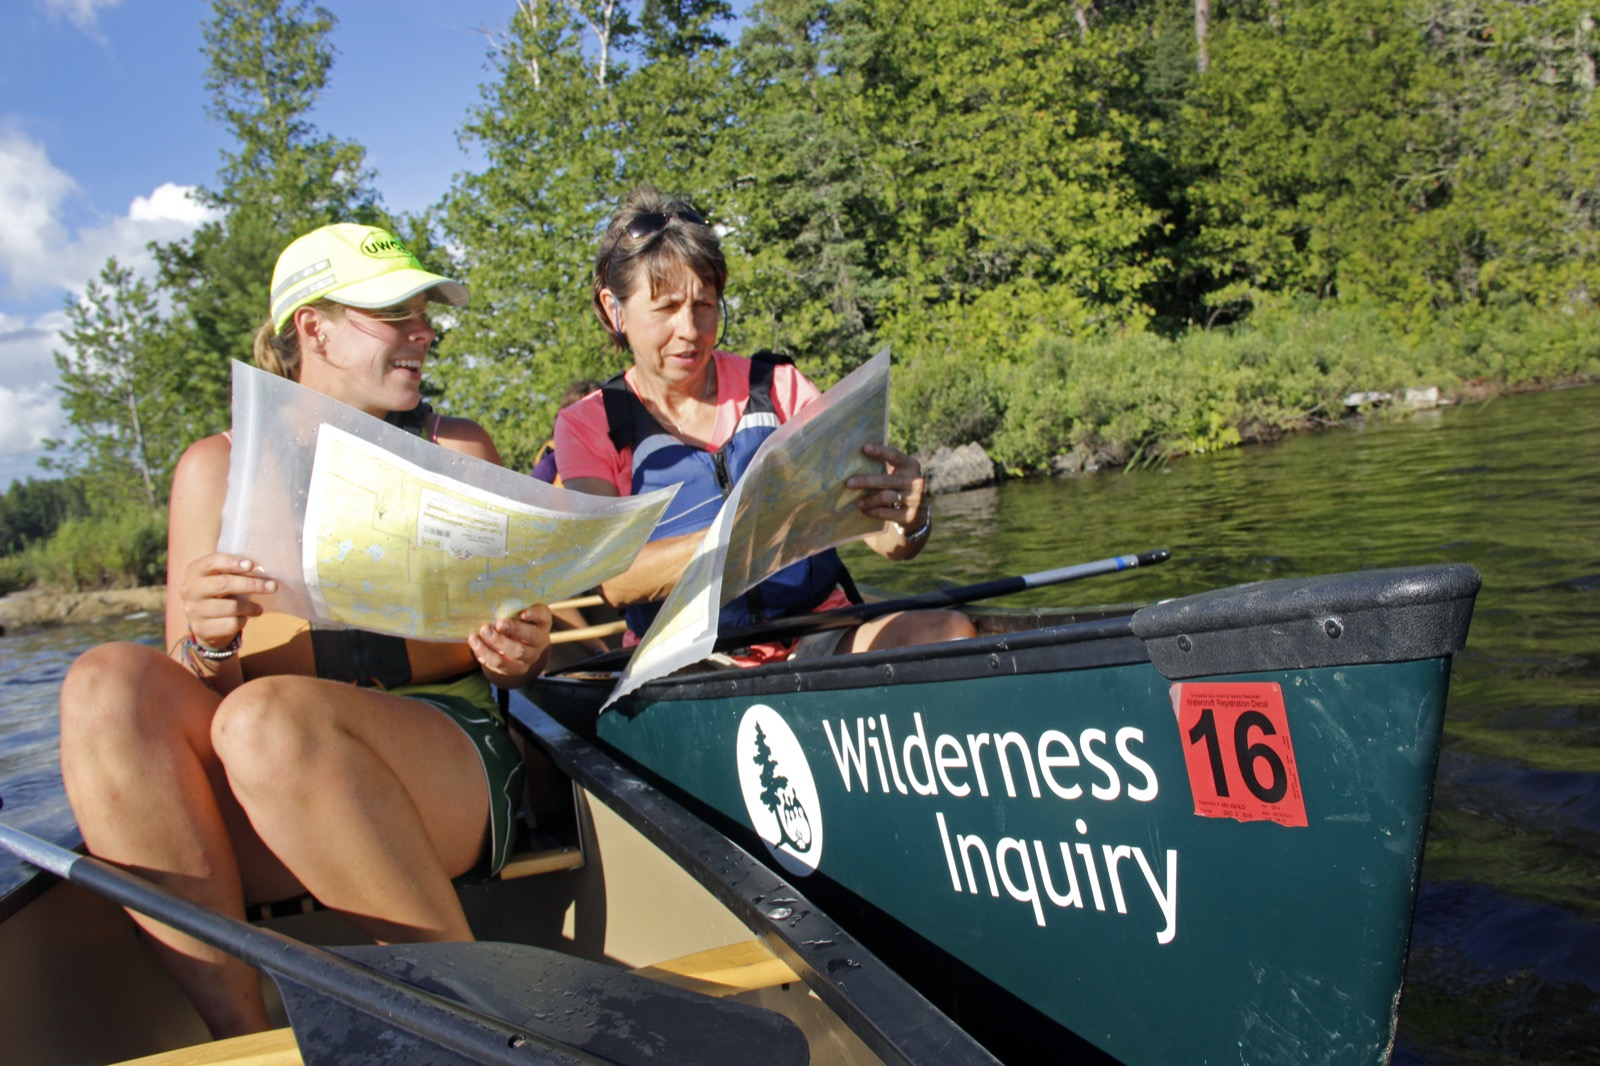 A guide and a participant compare maps while sitting in separate canoes.